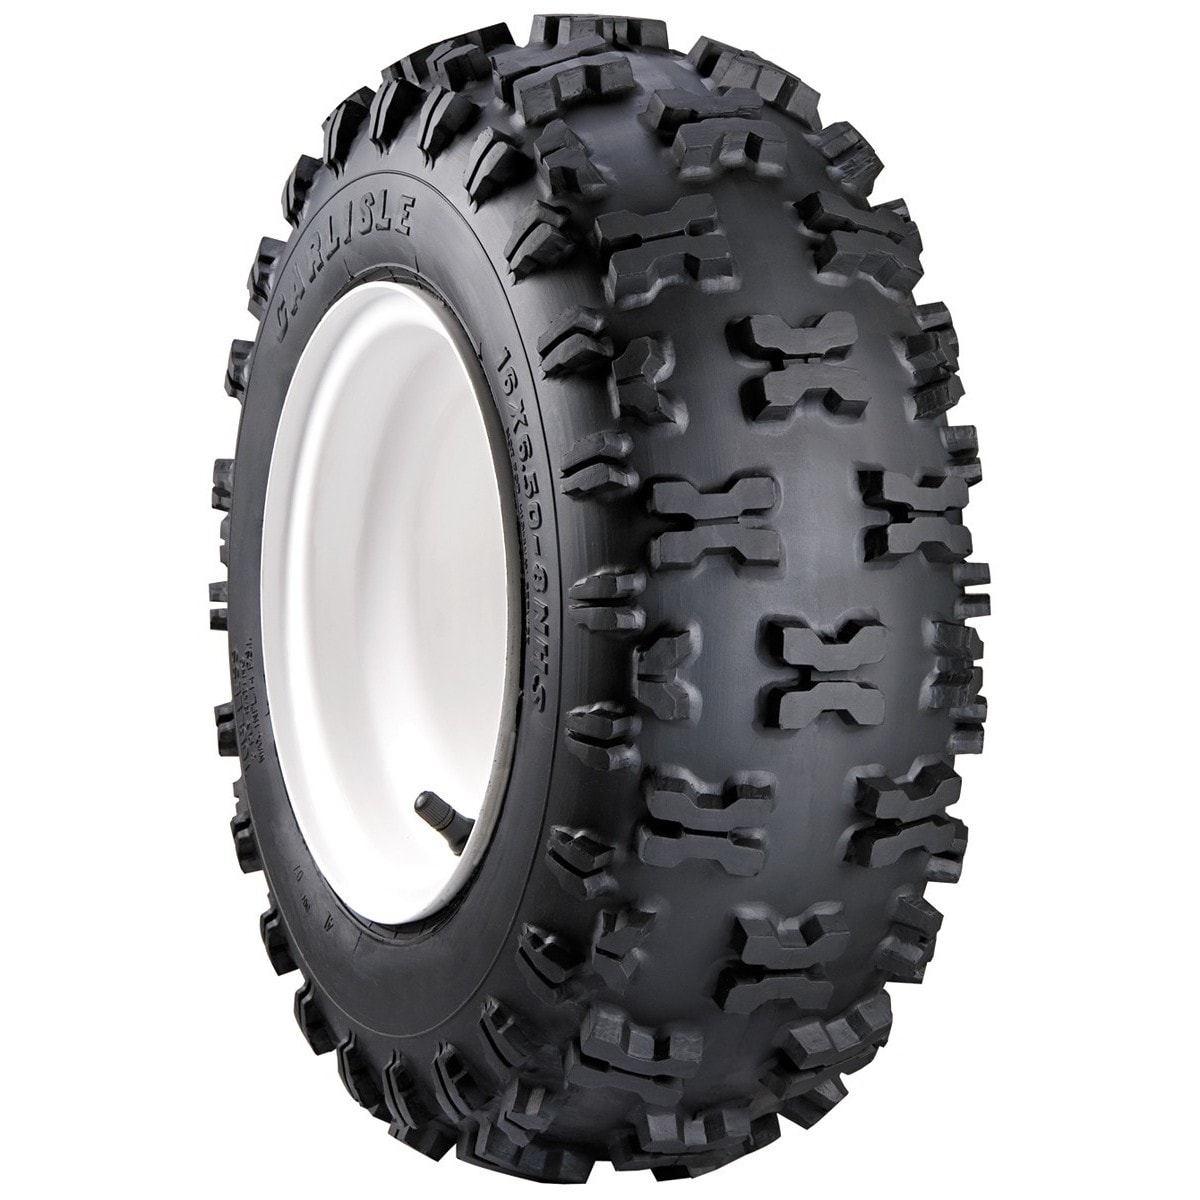 Carlisle Snow Hog Snow Thrower Tire - 15X500-6 LRA/2 ply ...